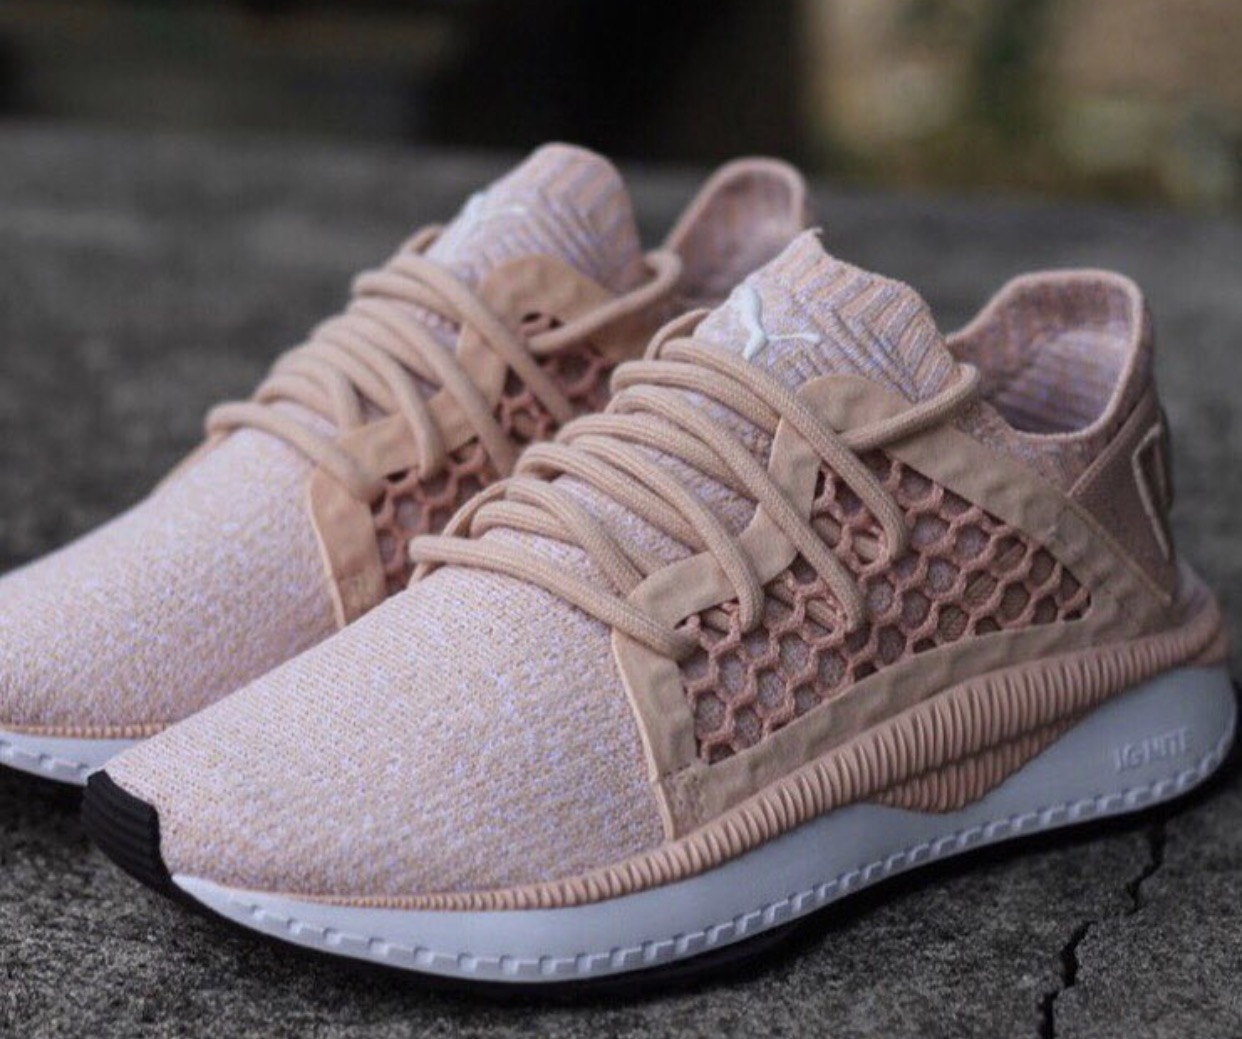 cec318825be Cop or Can  PUMA s Tsugi Netfit in Pink